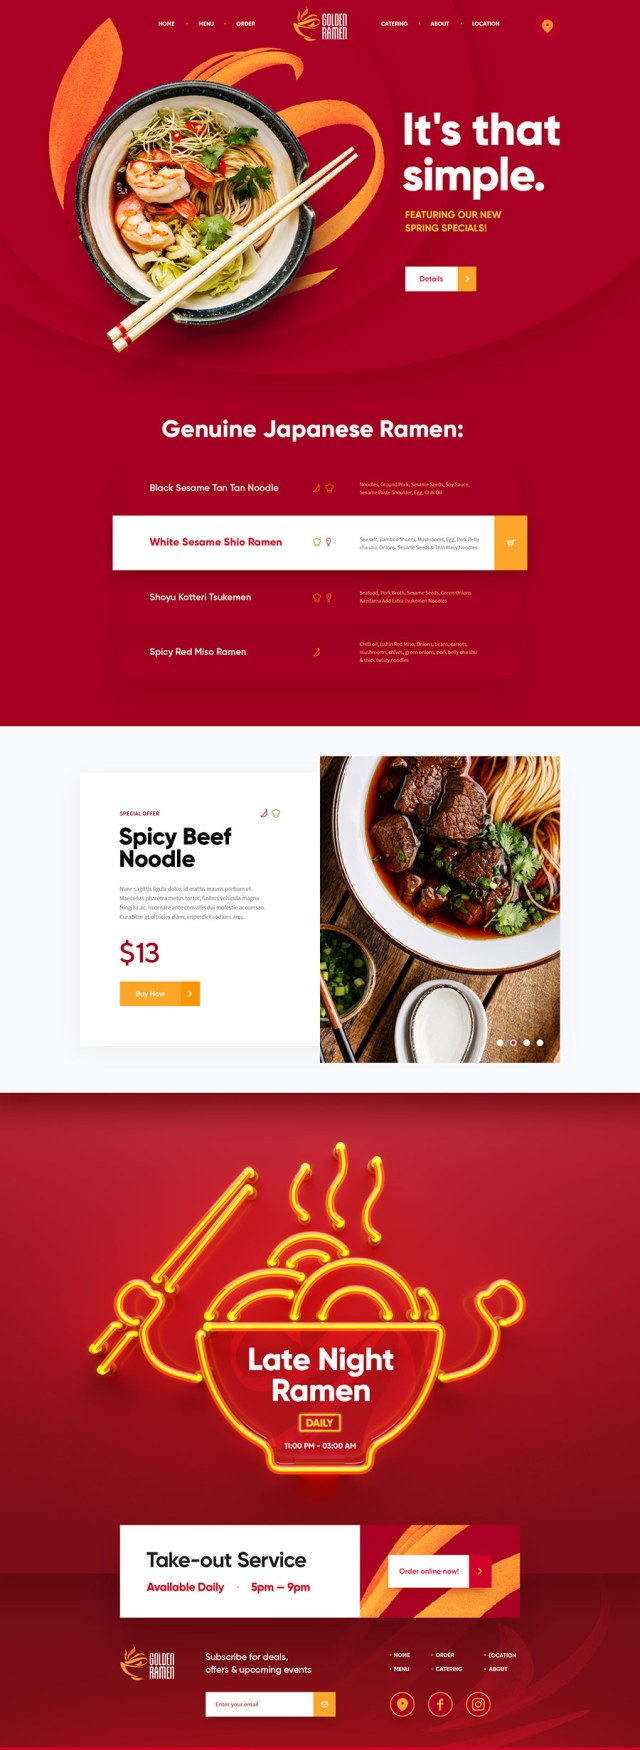 Golden Ramen / Web Site Design by Mike | Creative Mints | Inspiración web rojo | www.mlmonferrer.es